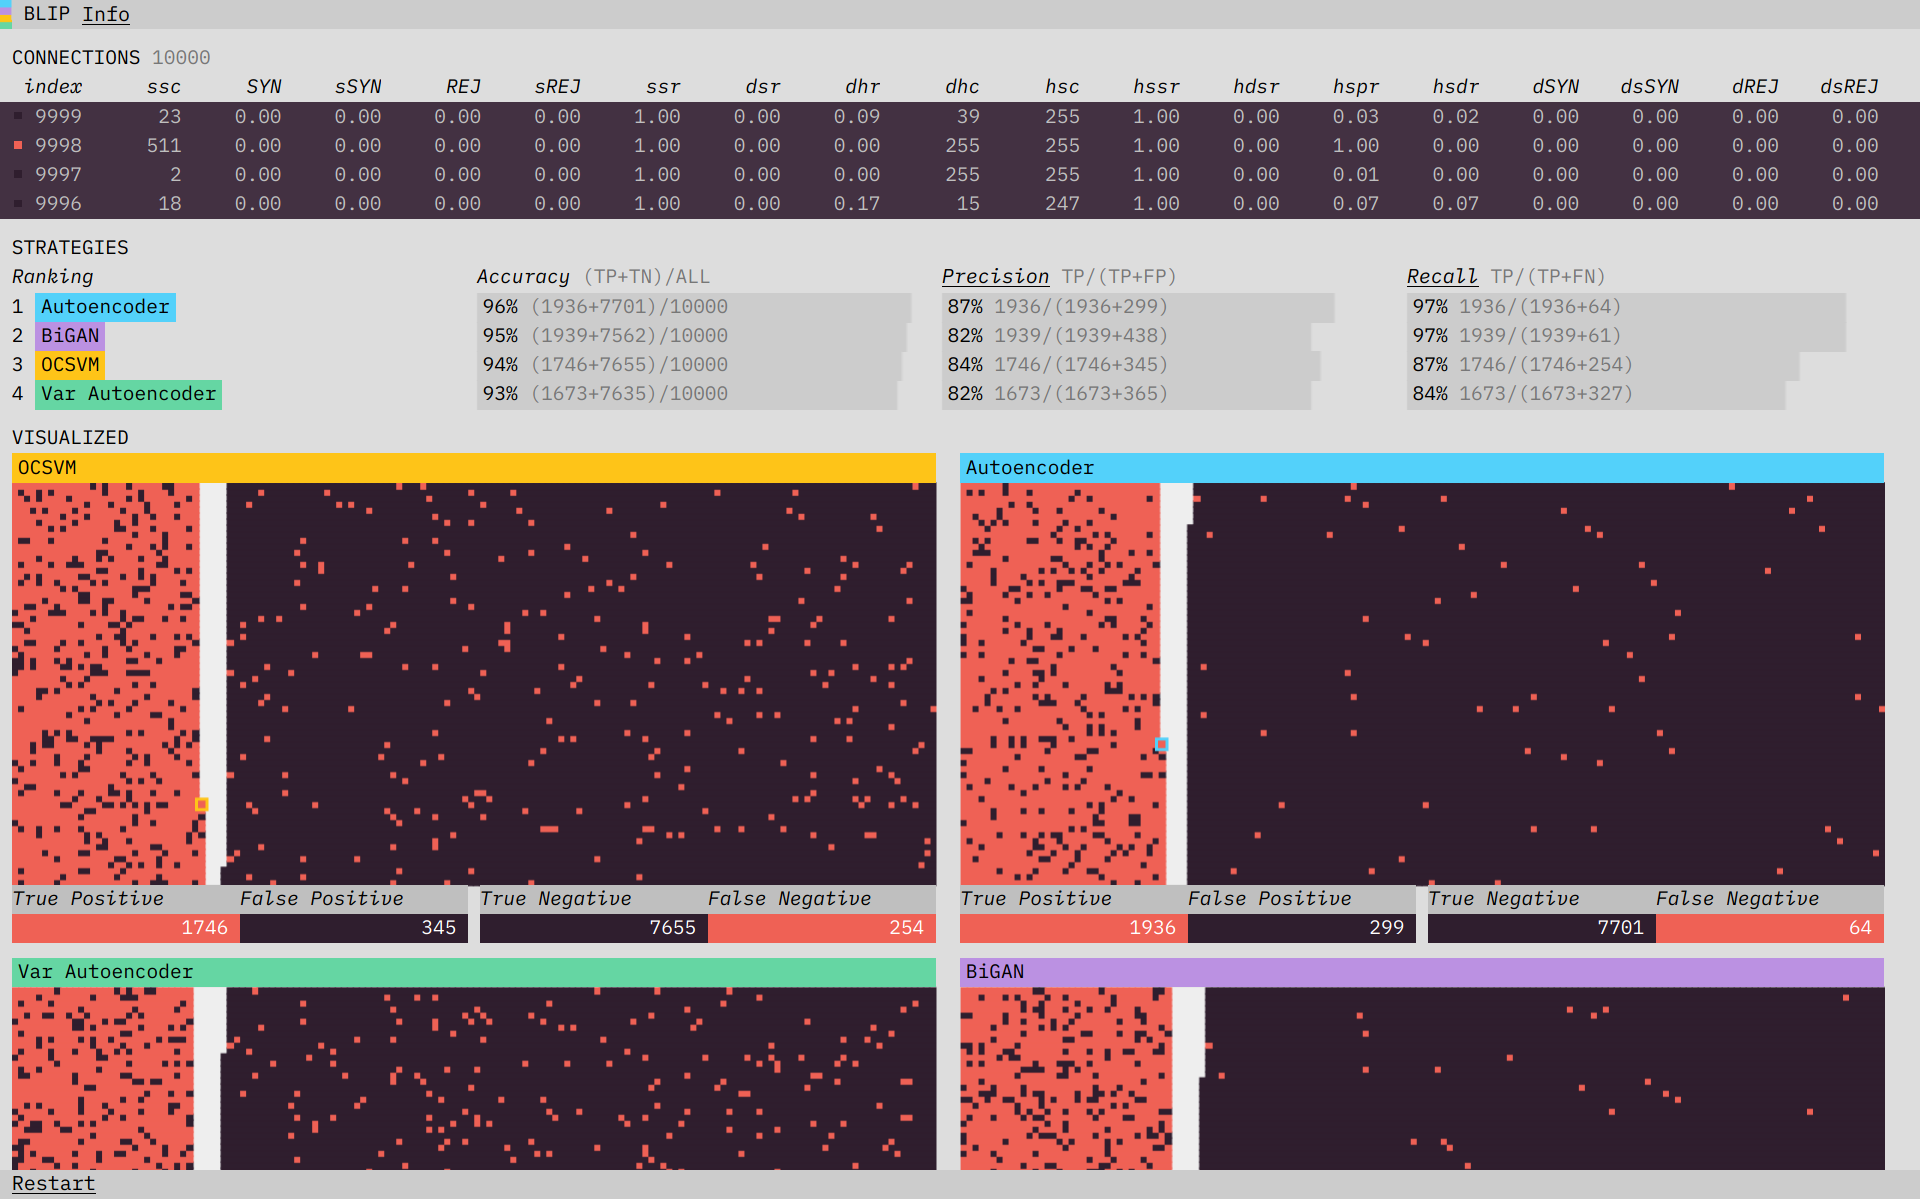 Building Blip: behind the scenes of our anomaly detection prototype